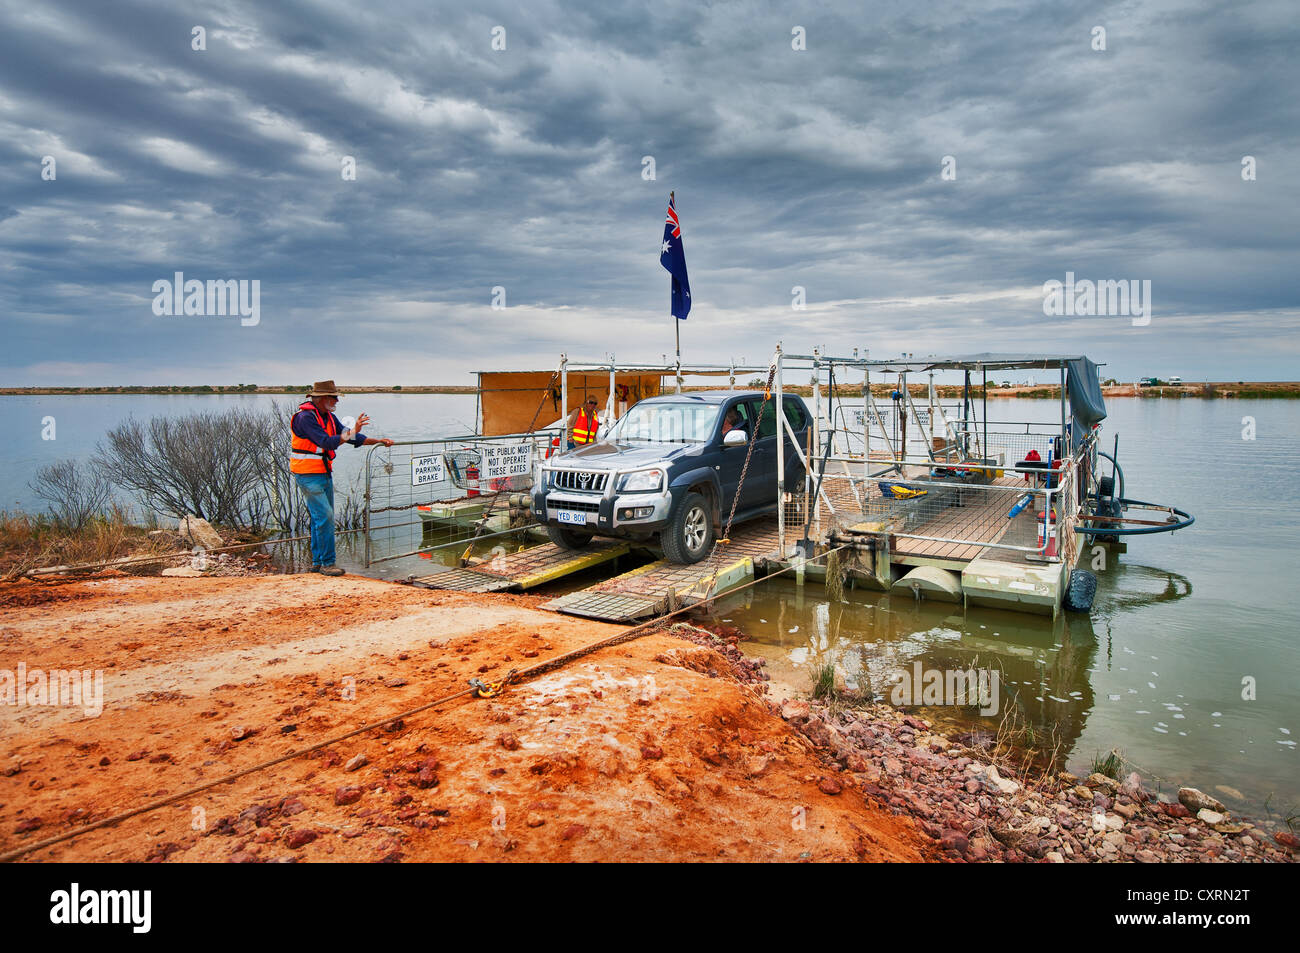 Cooper Creek ferry operating after a big flood. - Stock Image